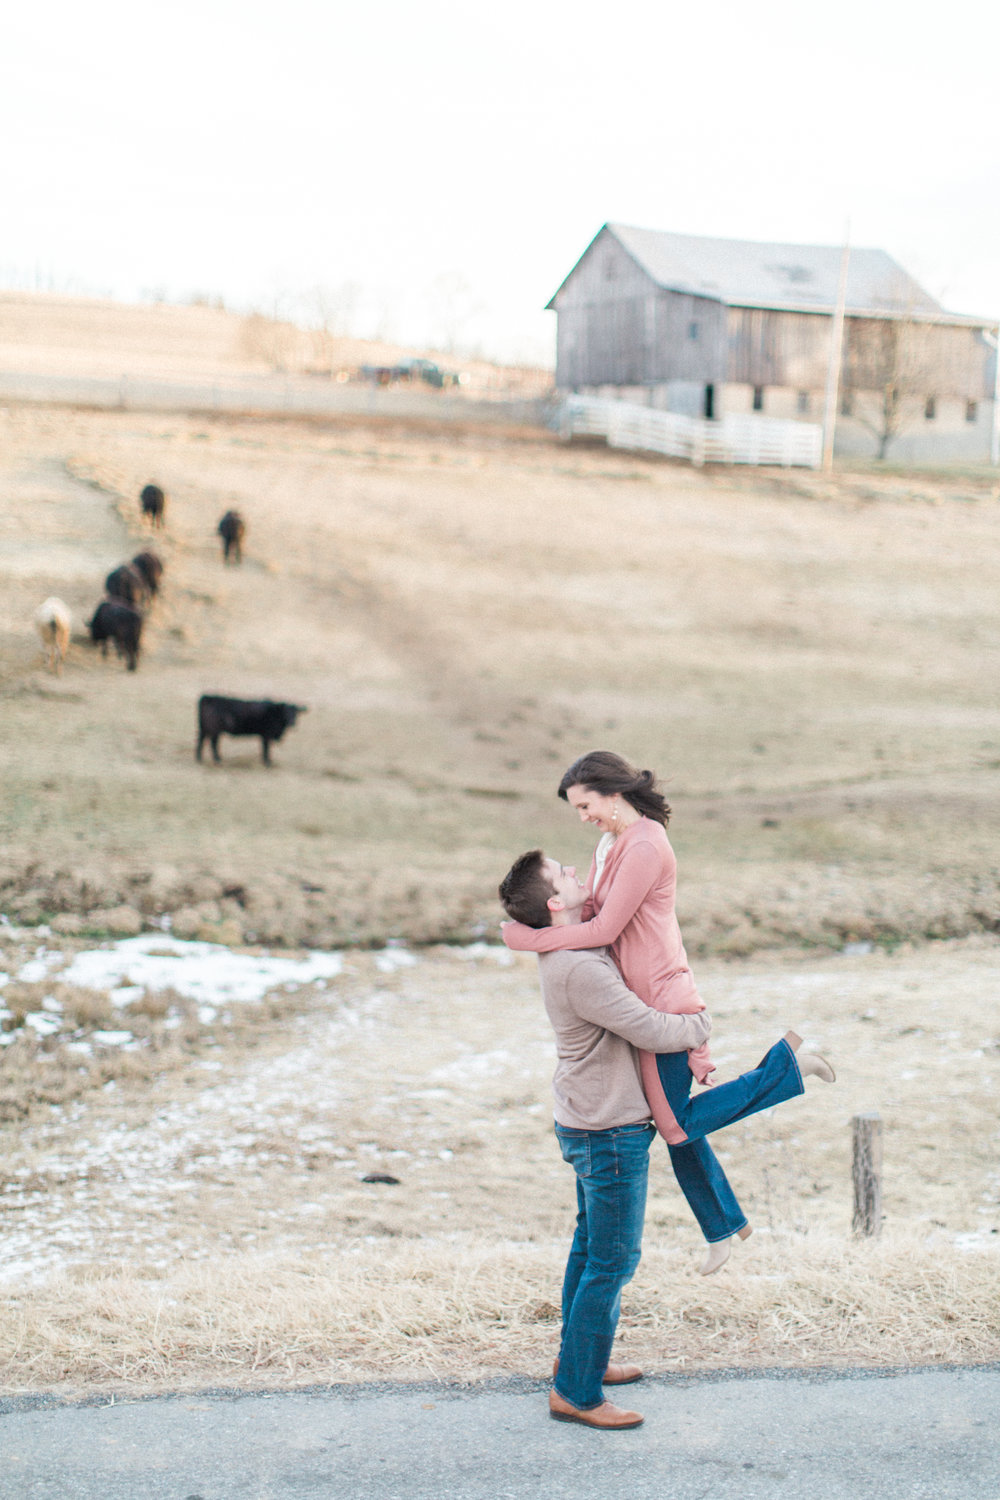 Abigail_Jill_Photography_Maryland_Engagement_Farm_Emily_Justin31.jpg